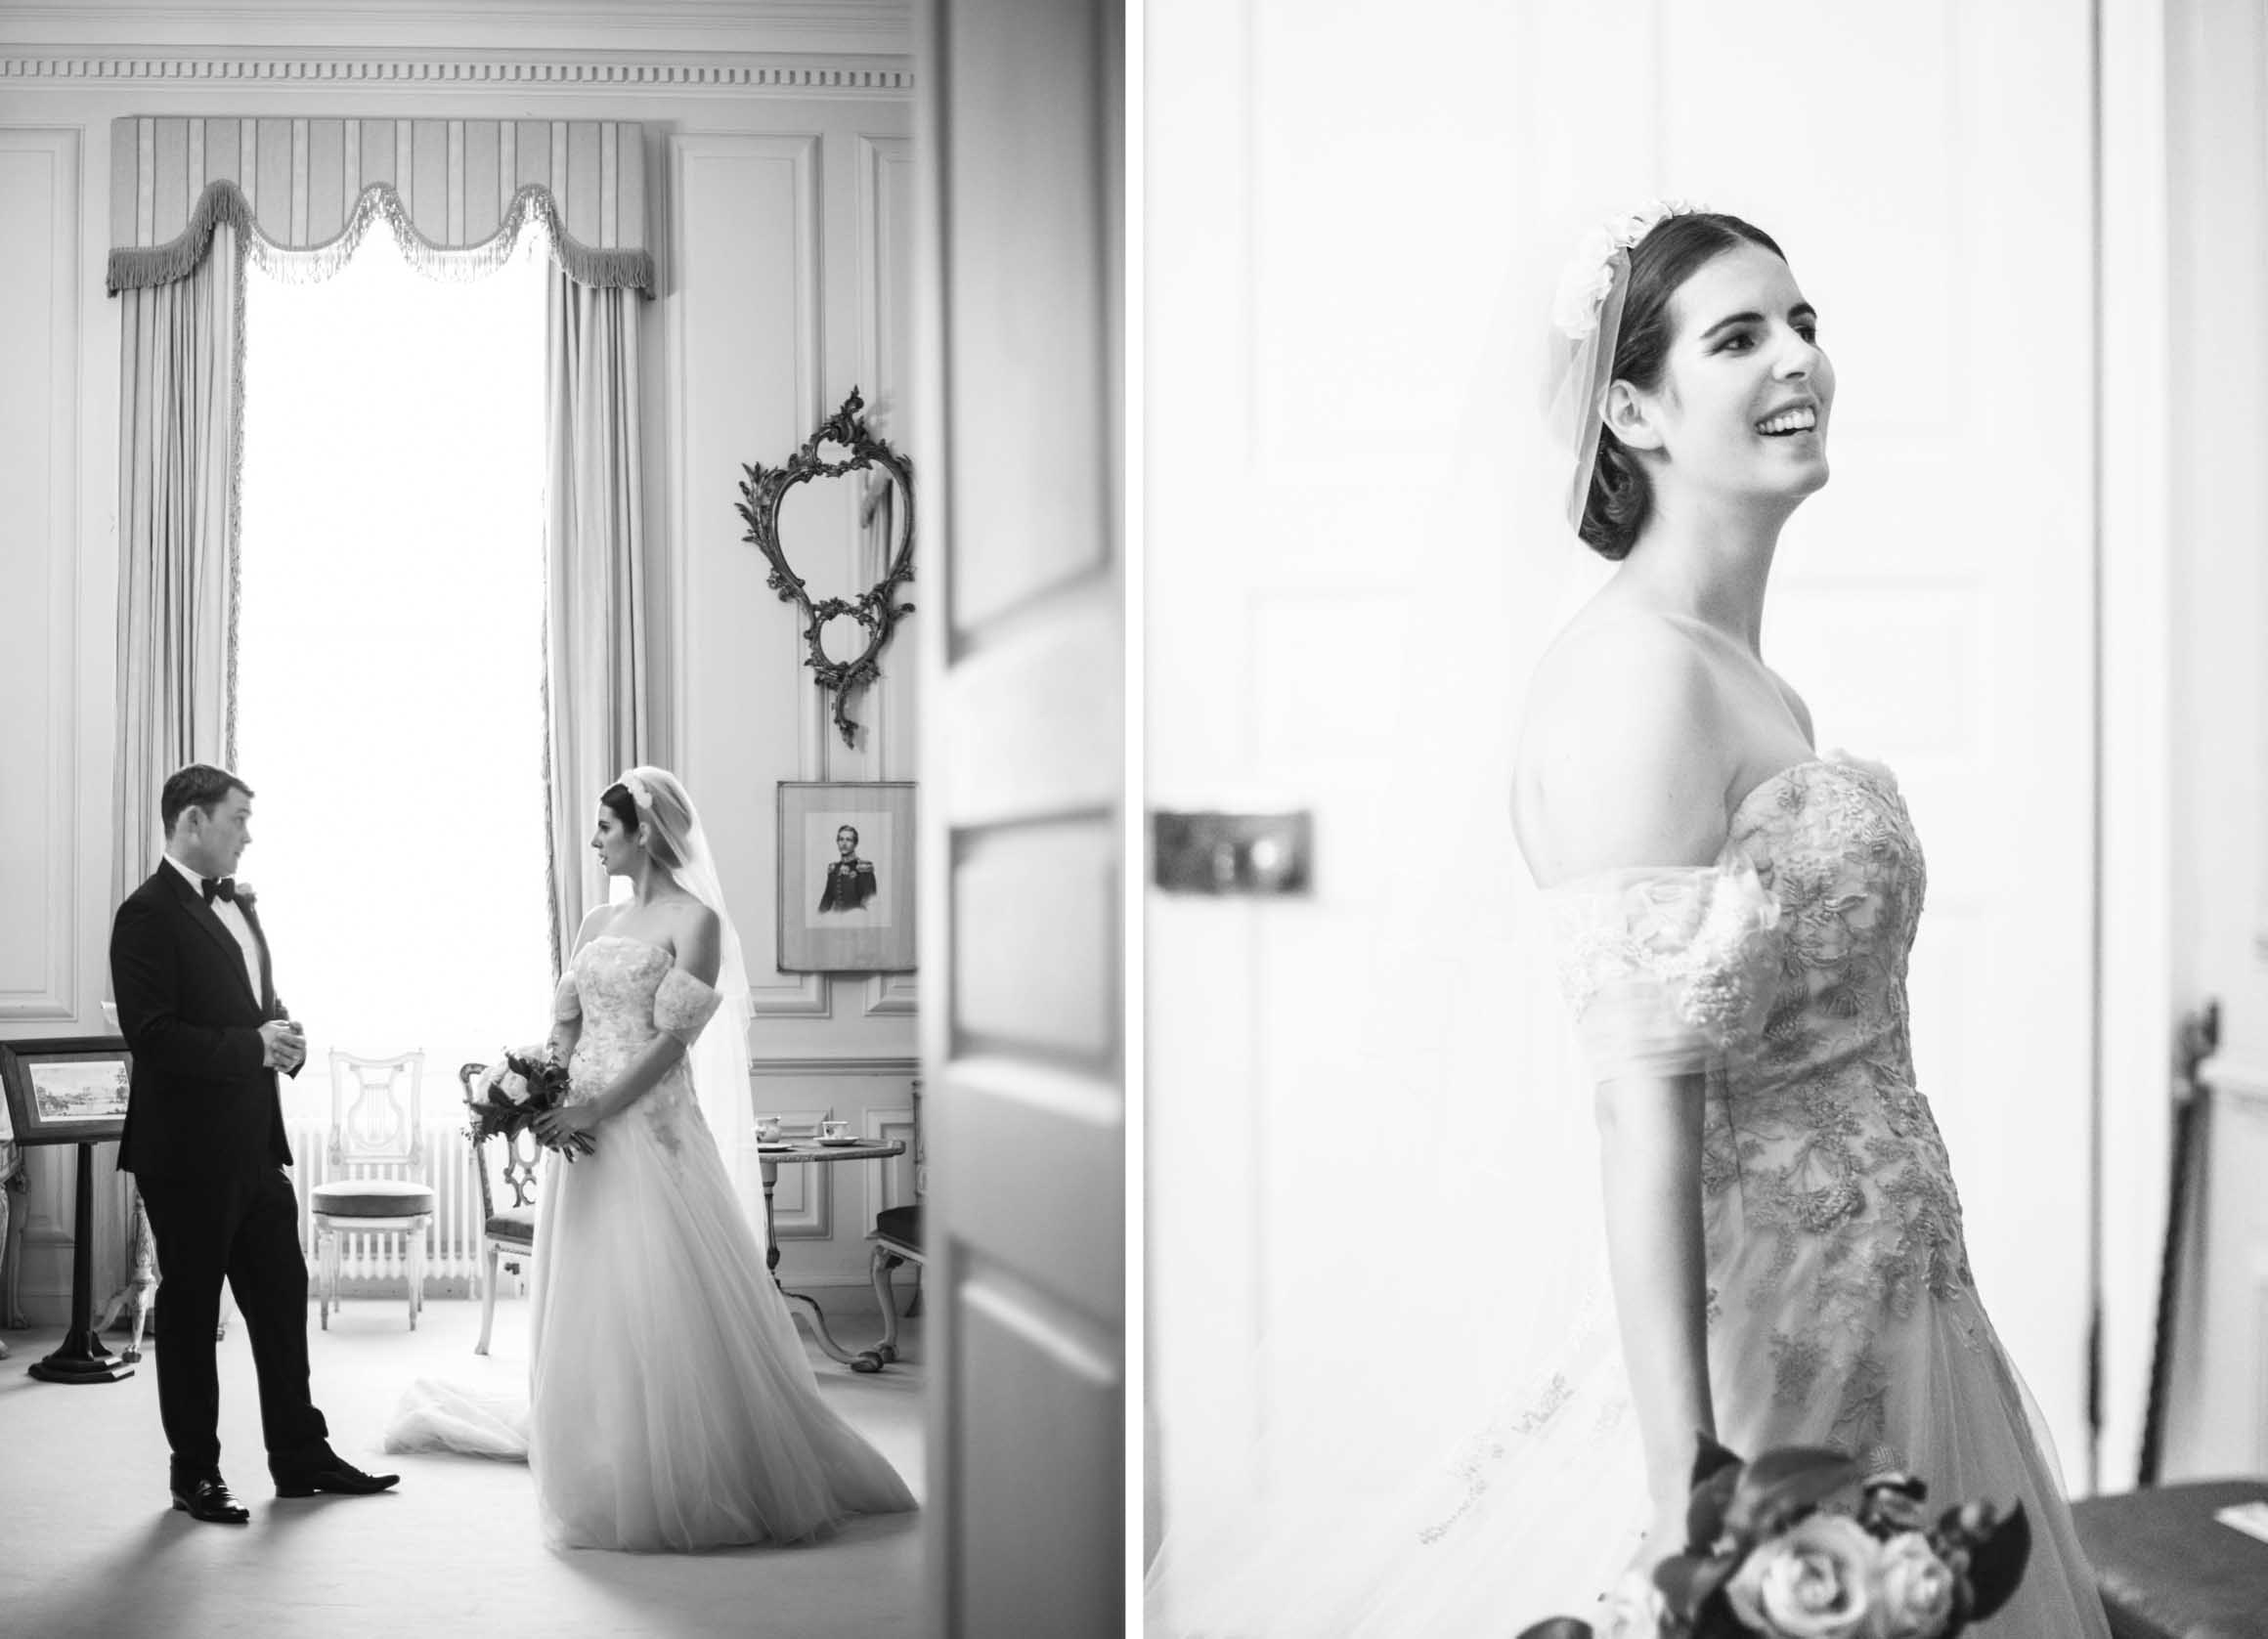 Amy O'Boyle Photography- Destination & UK Fine Art Film Wedding Photographer- Stoneleigh Abbey Wedding 5.jpg